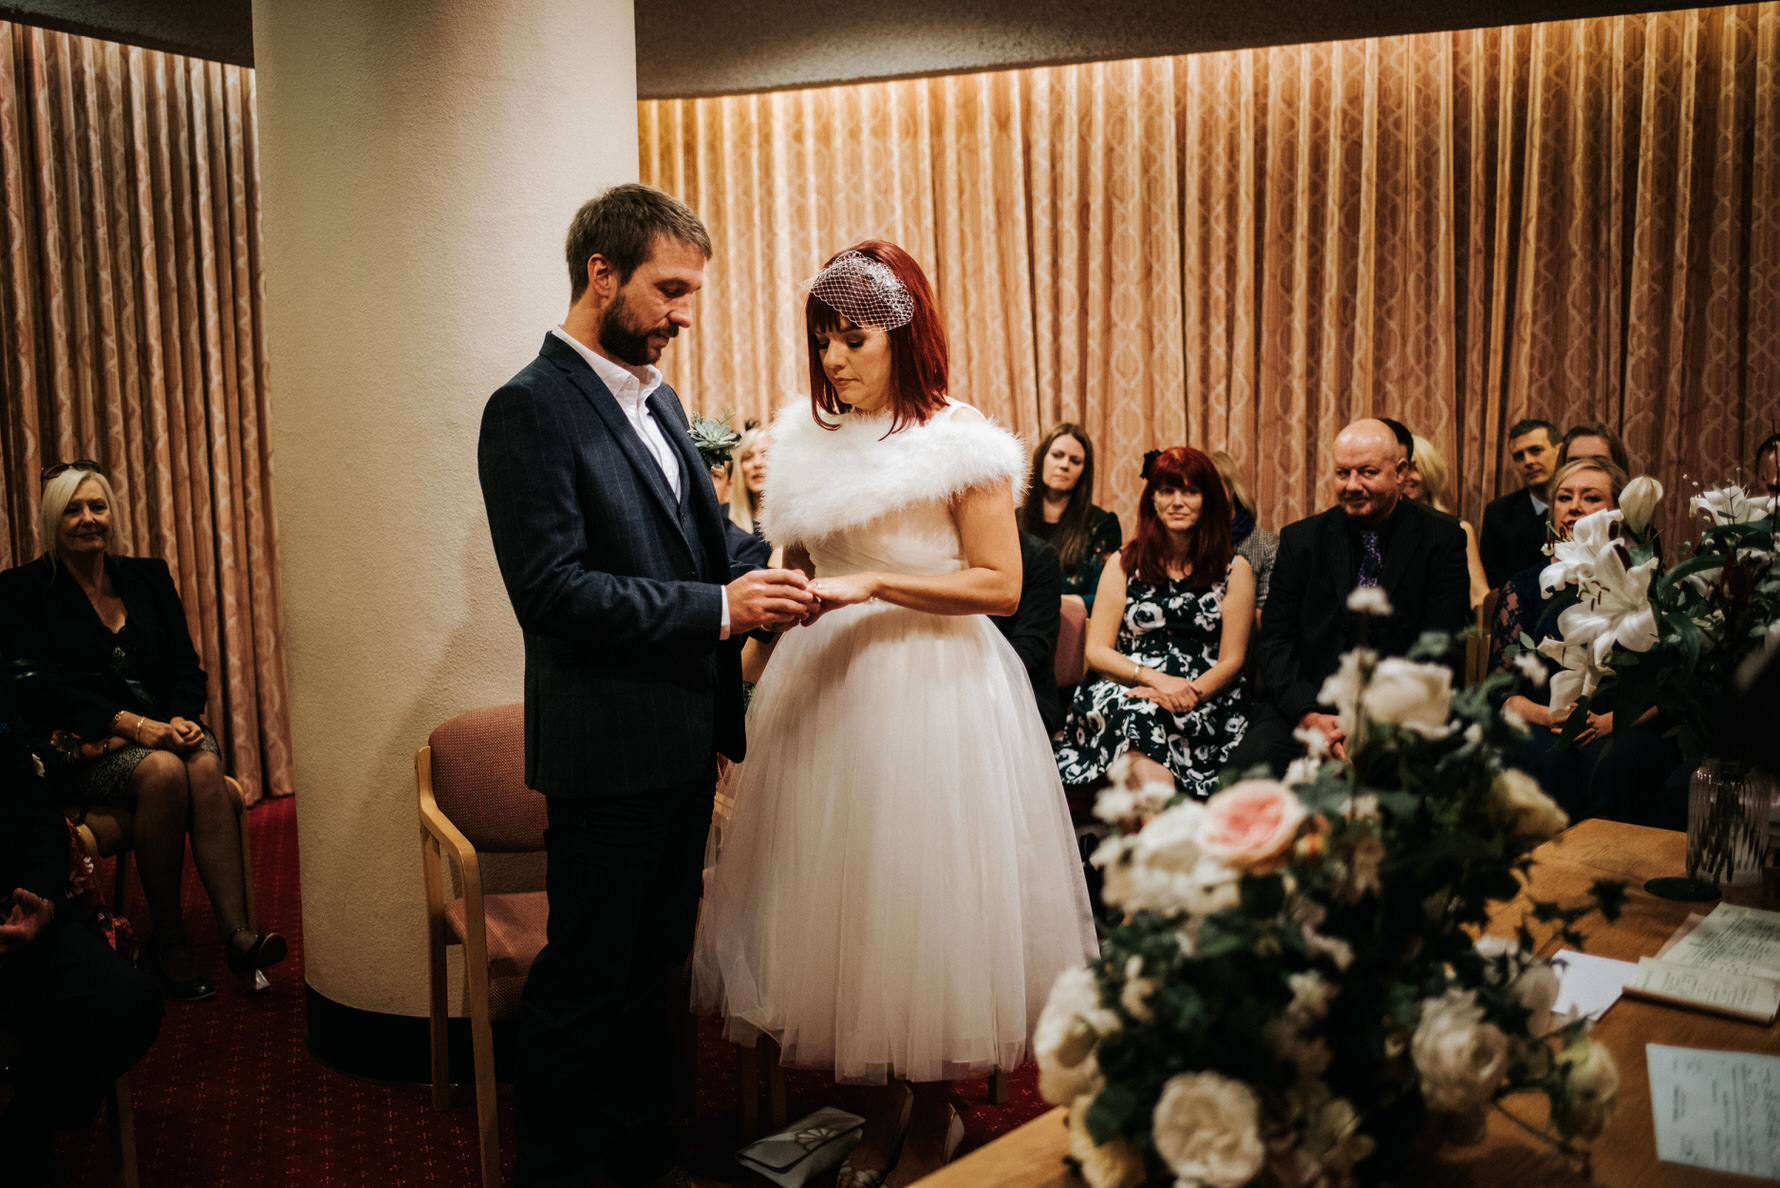 Cheshire Wedding Photojournalism - Bride and groom exchange rings